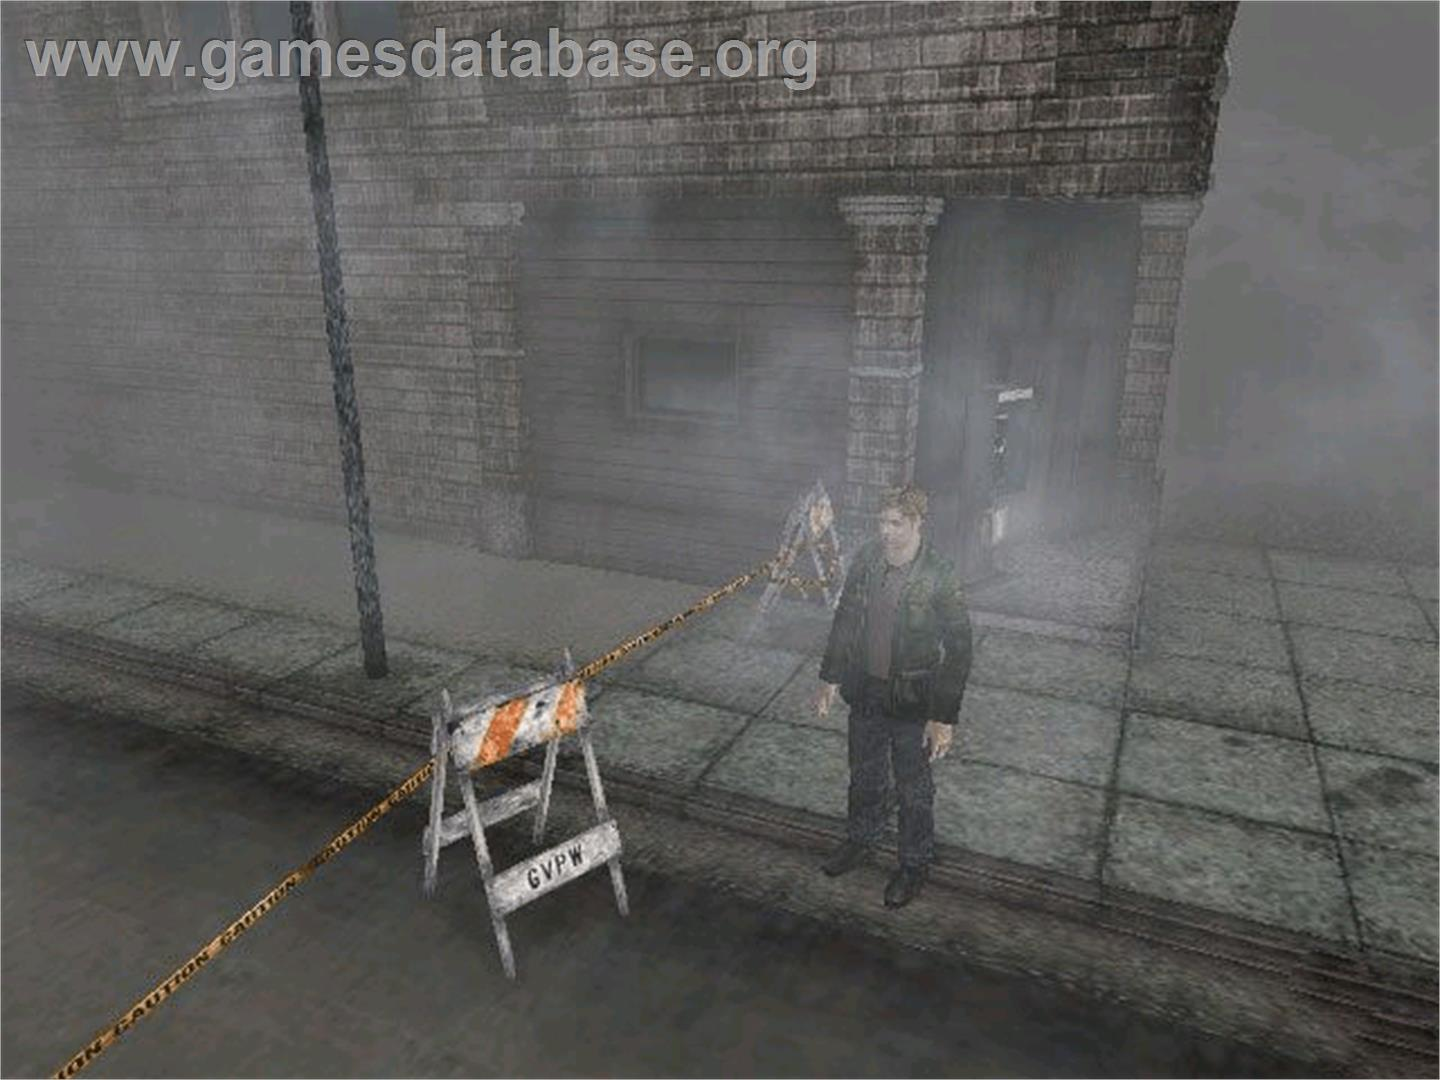 Silent Hill 2: Restless Dreams - Microsoft Xbox - Artwork - In Game